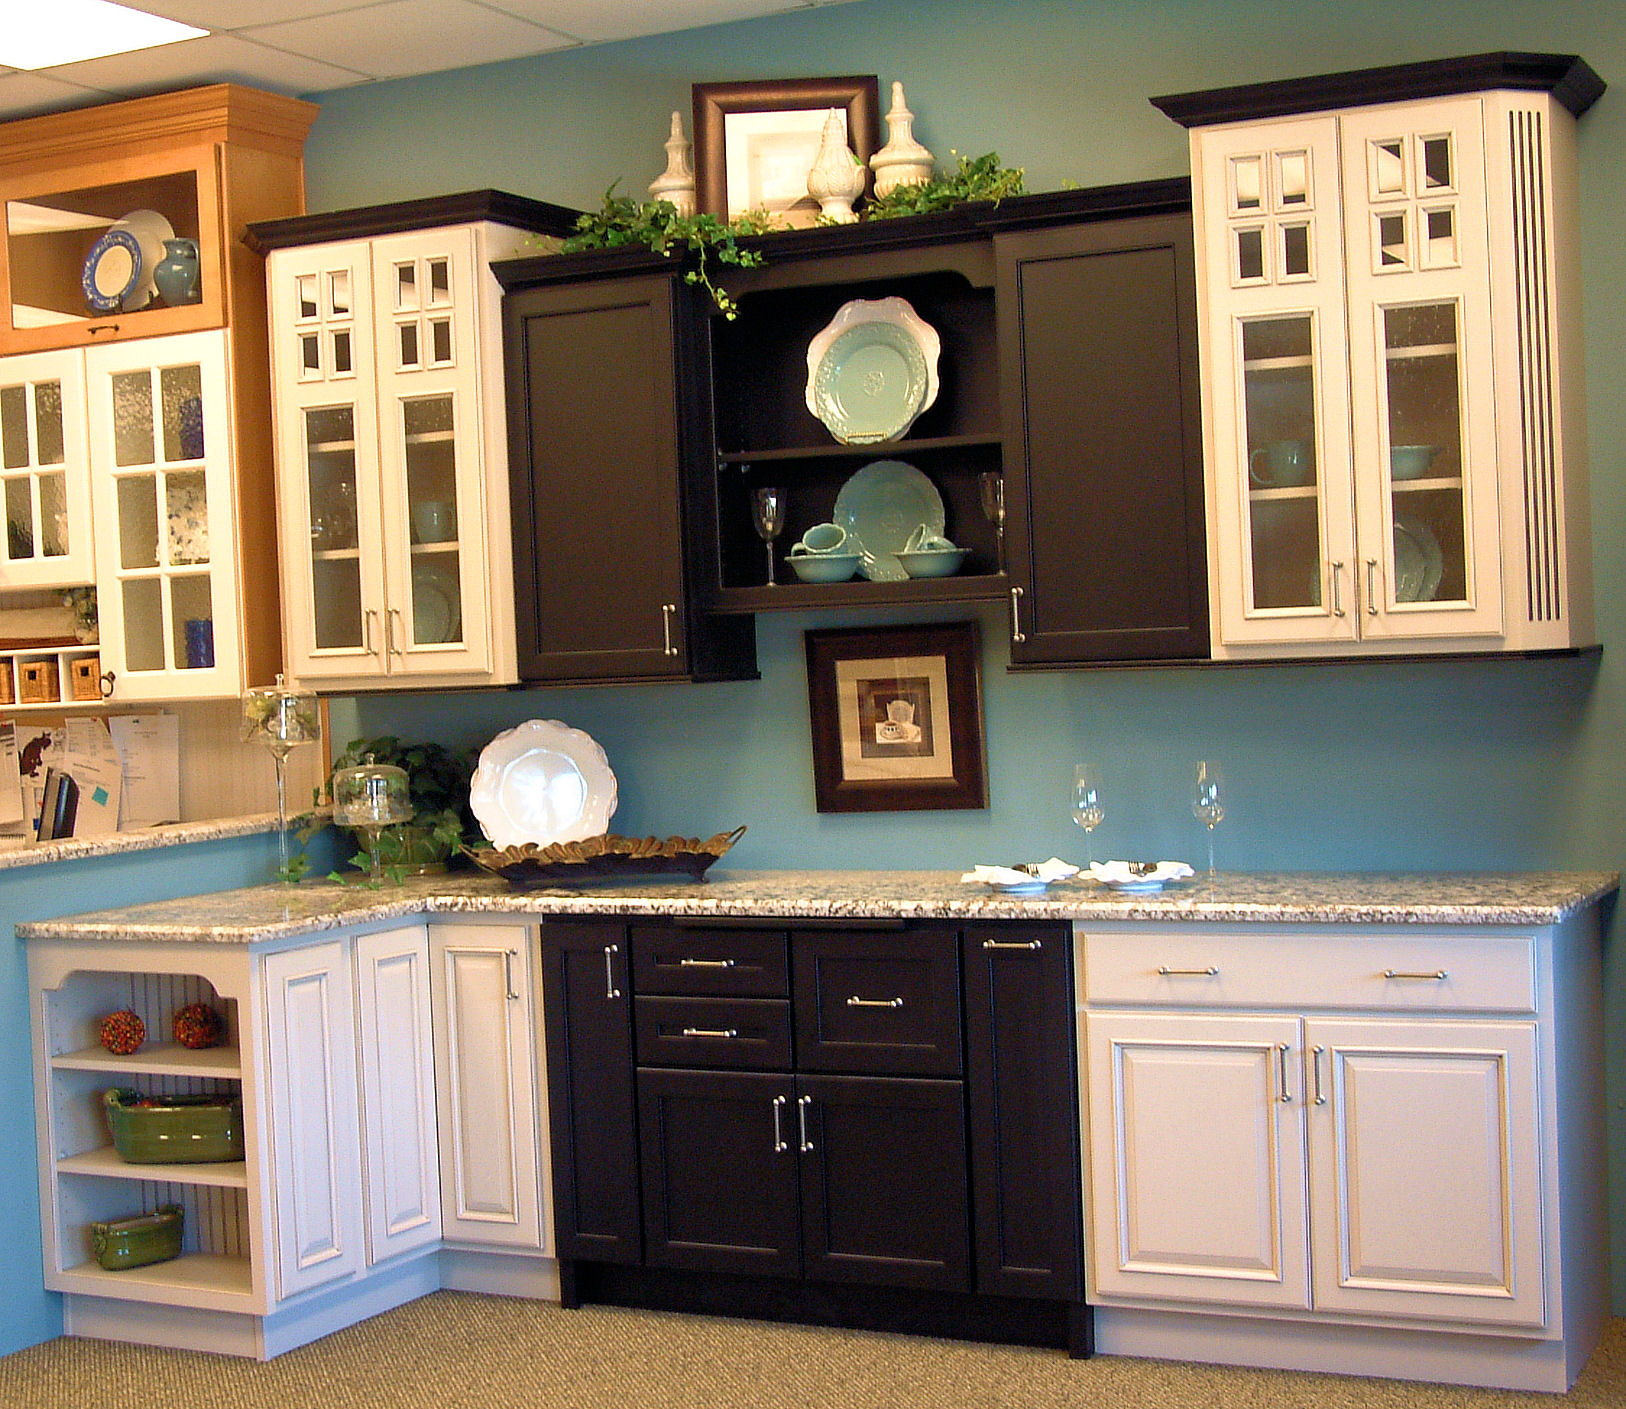 Mid Continent Cabinets Pricing | Certified Cabinet Corp | Norcraft Cabinets